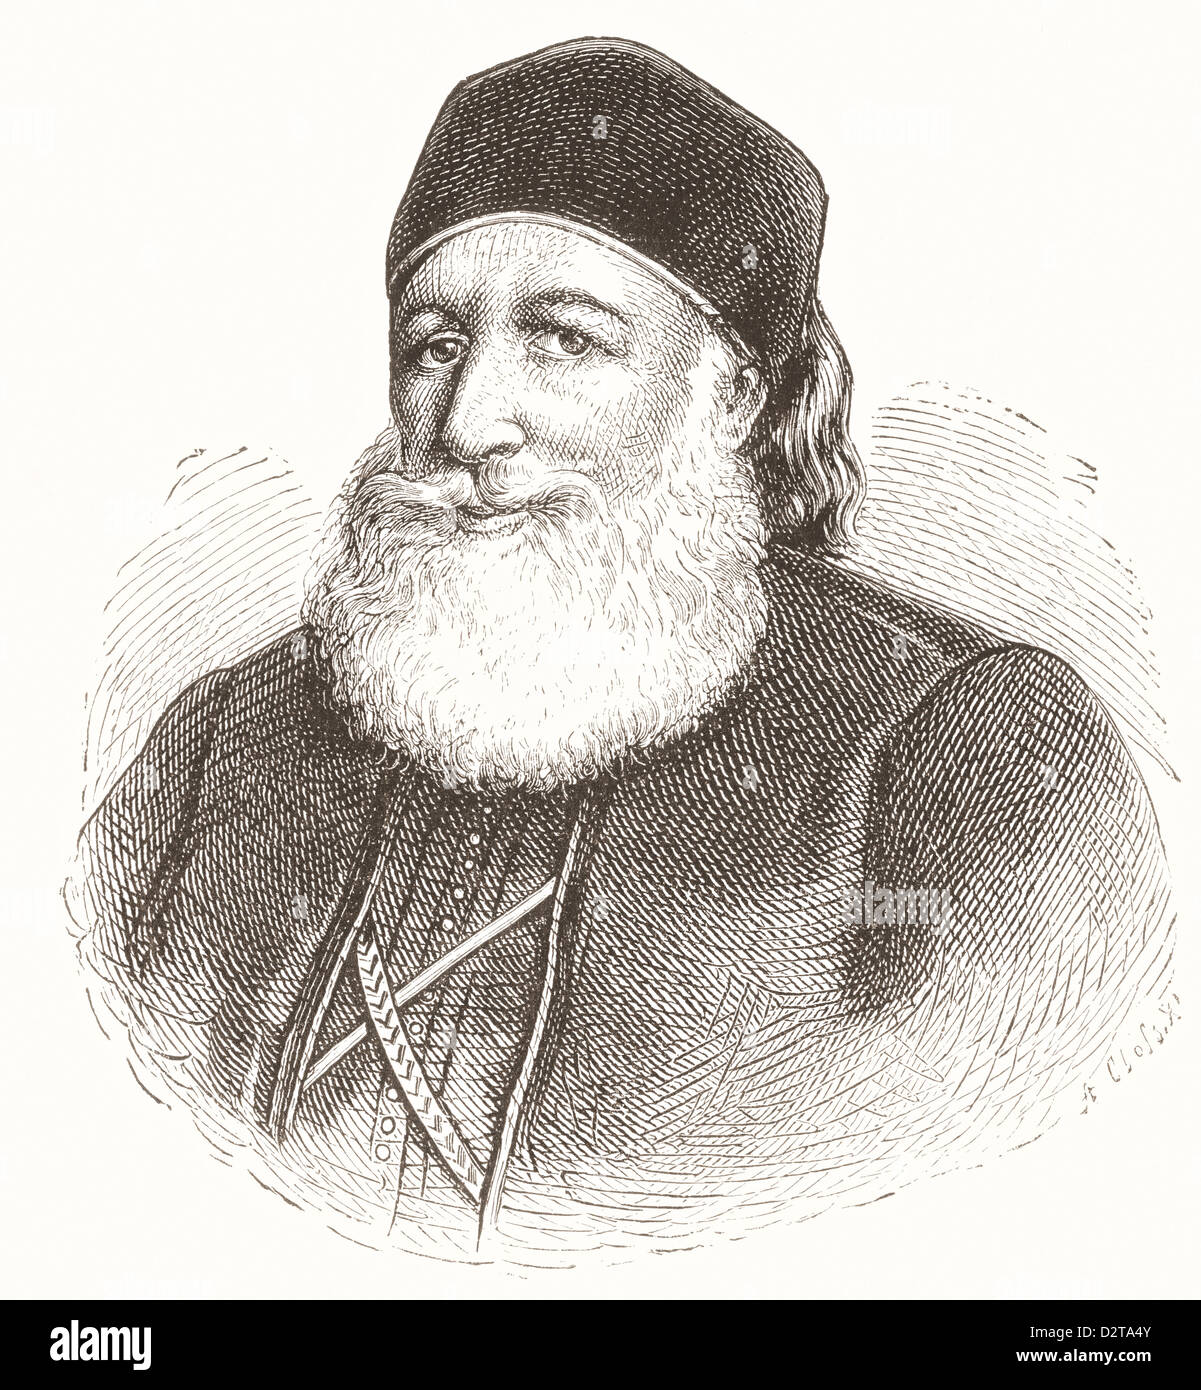 Muhammad Ali Pasha al-Mas'ud ibn Agha, 1769 –1849. Albanian commander in Ottoman army, Wāli and self-declared - Stock Image